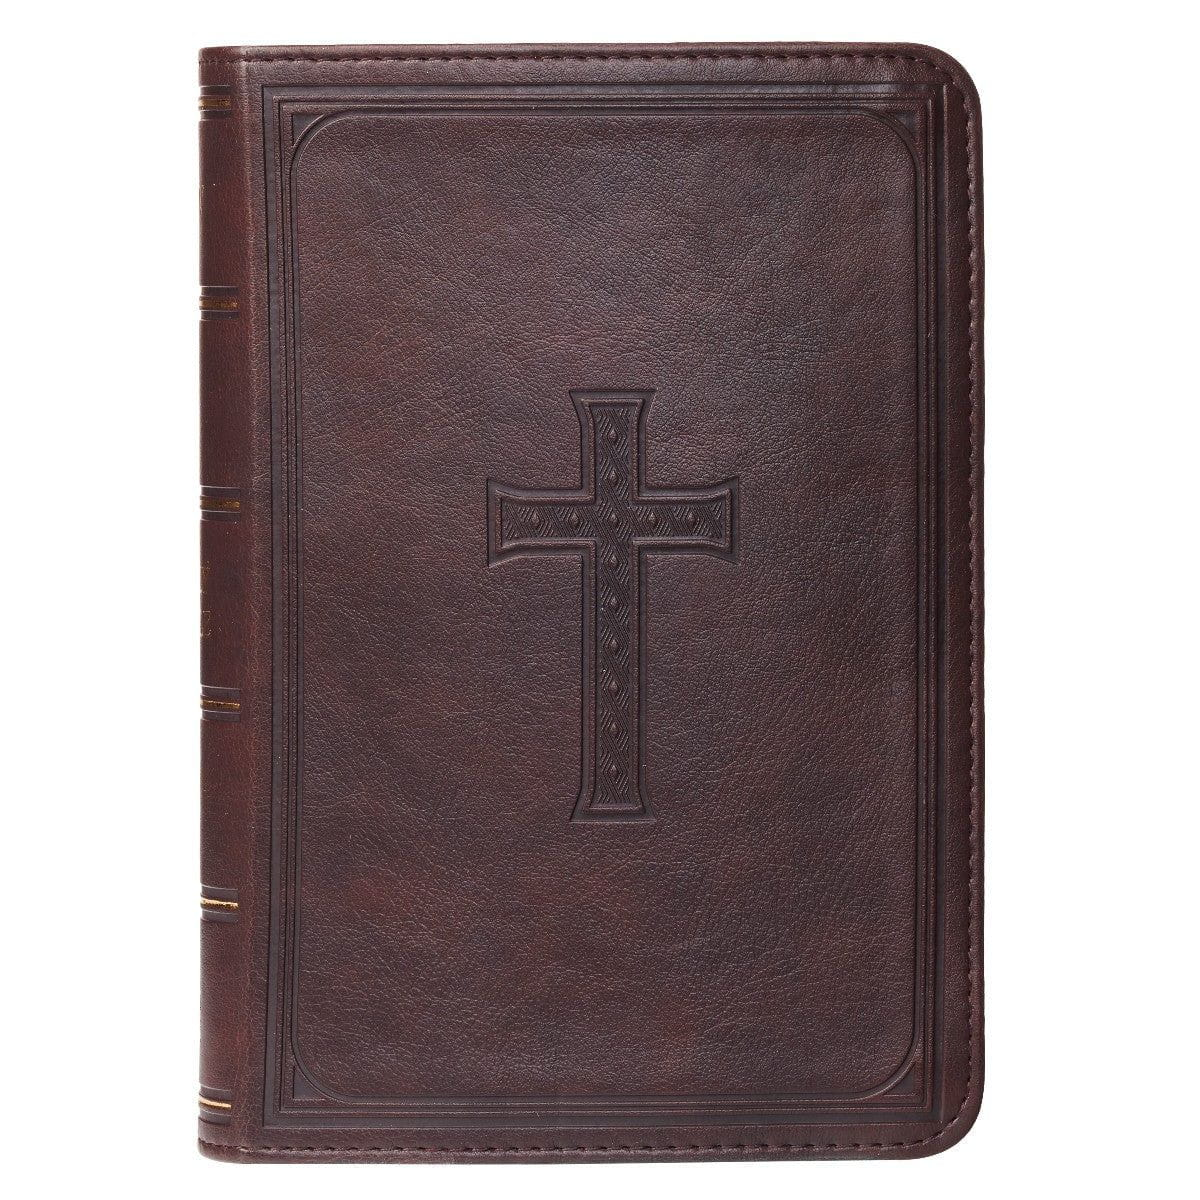 Brown KJV Bible Large Print Compact